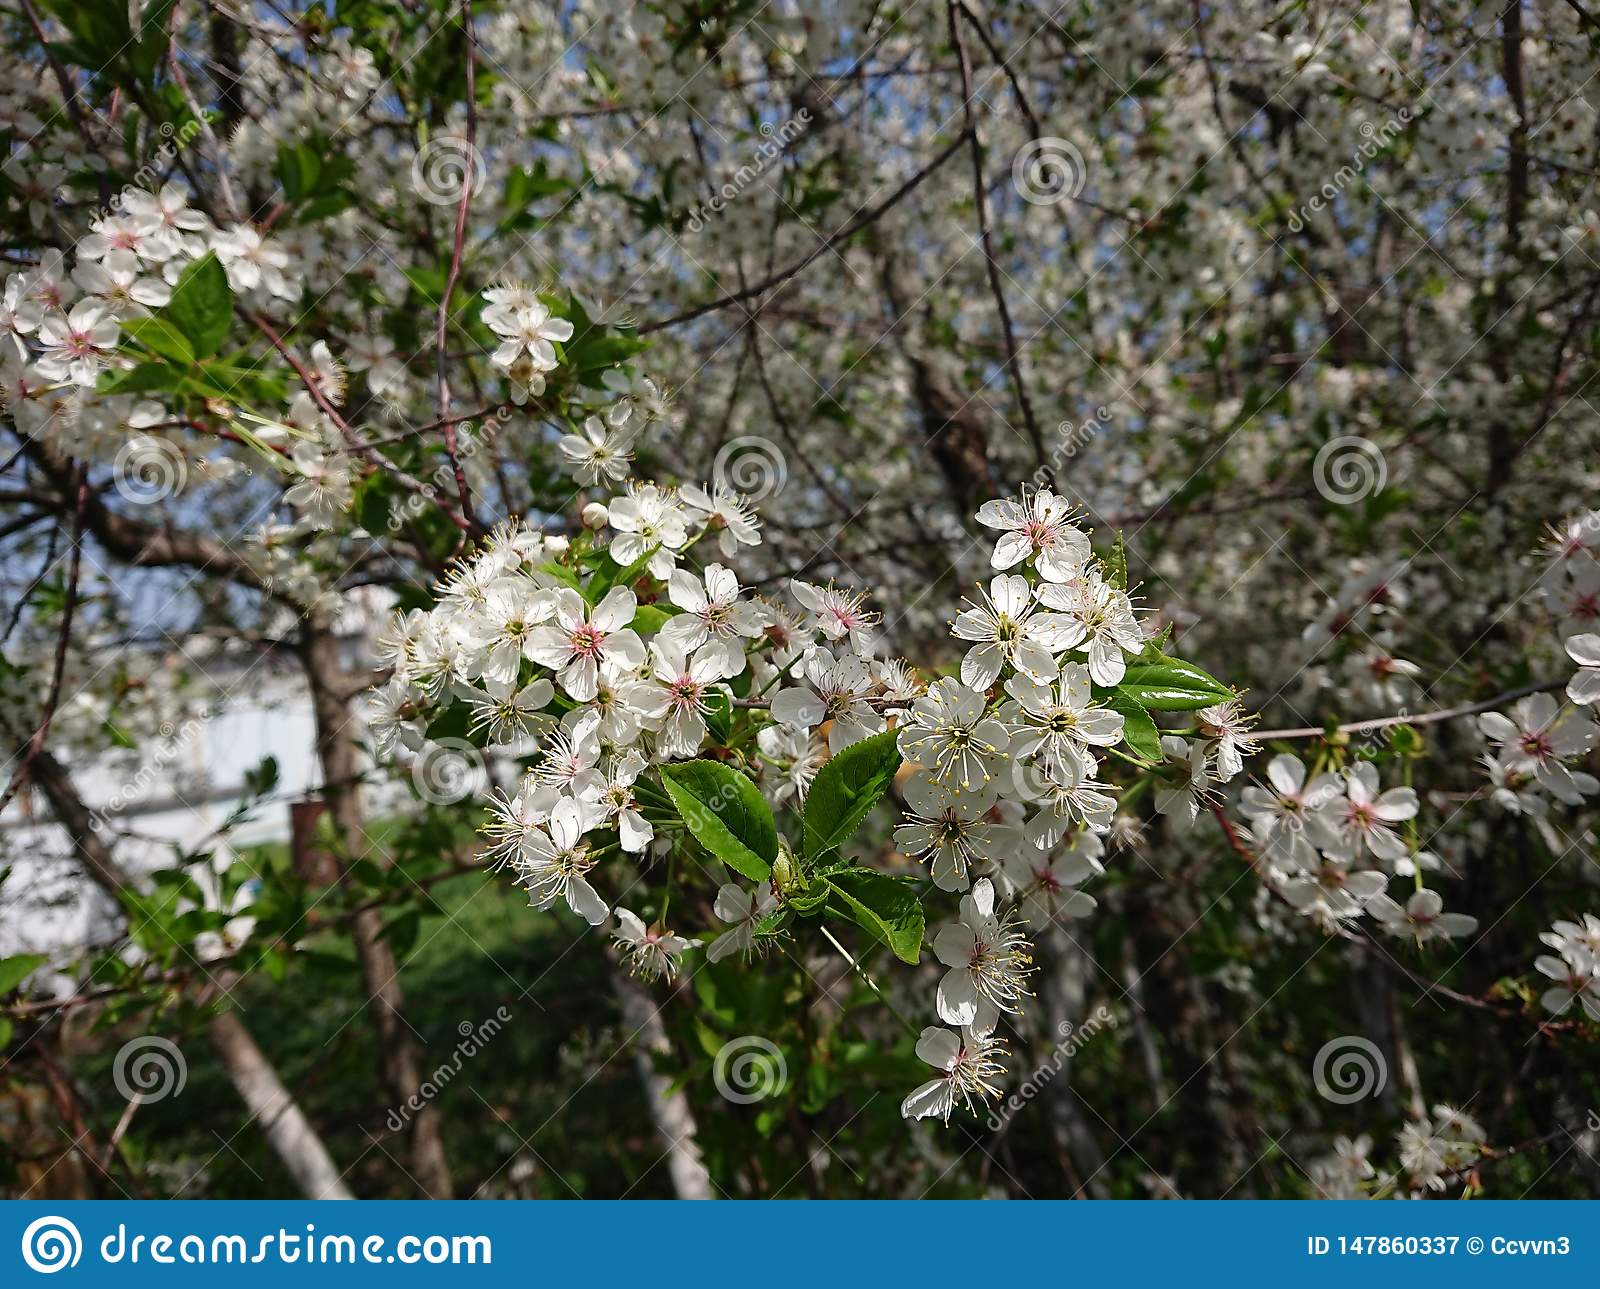 Hot beginning of May. Under Kazan bloomed gardens. Bumblebees and bees willingly collect nectar. Branch, blossom.